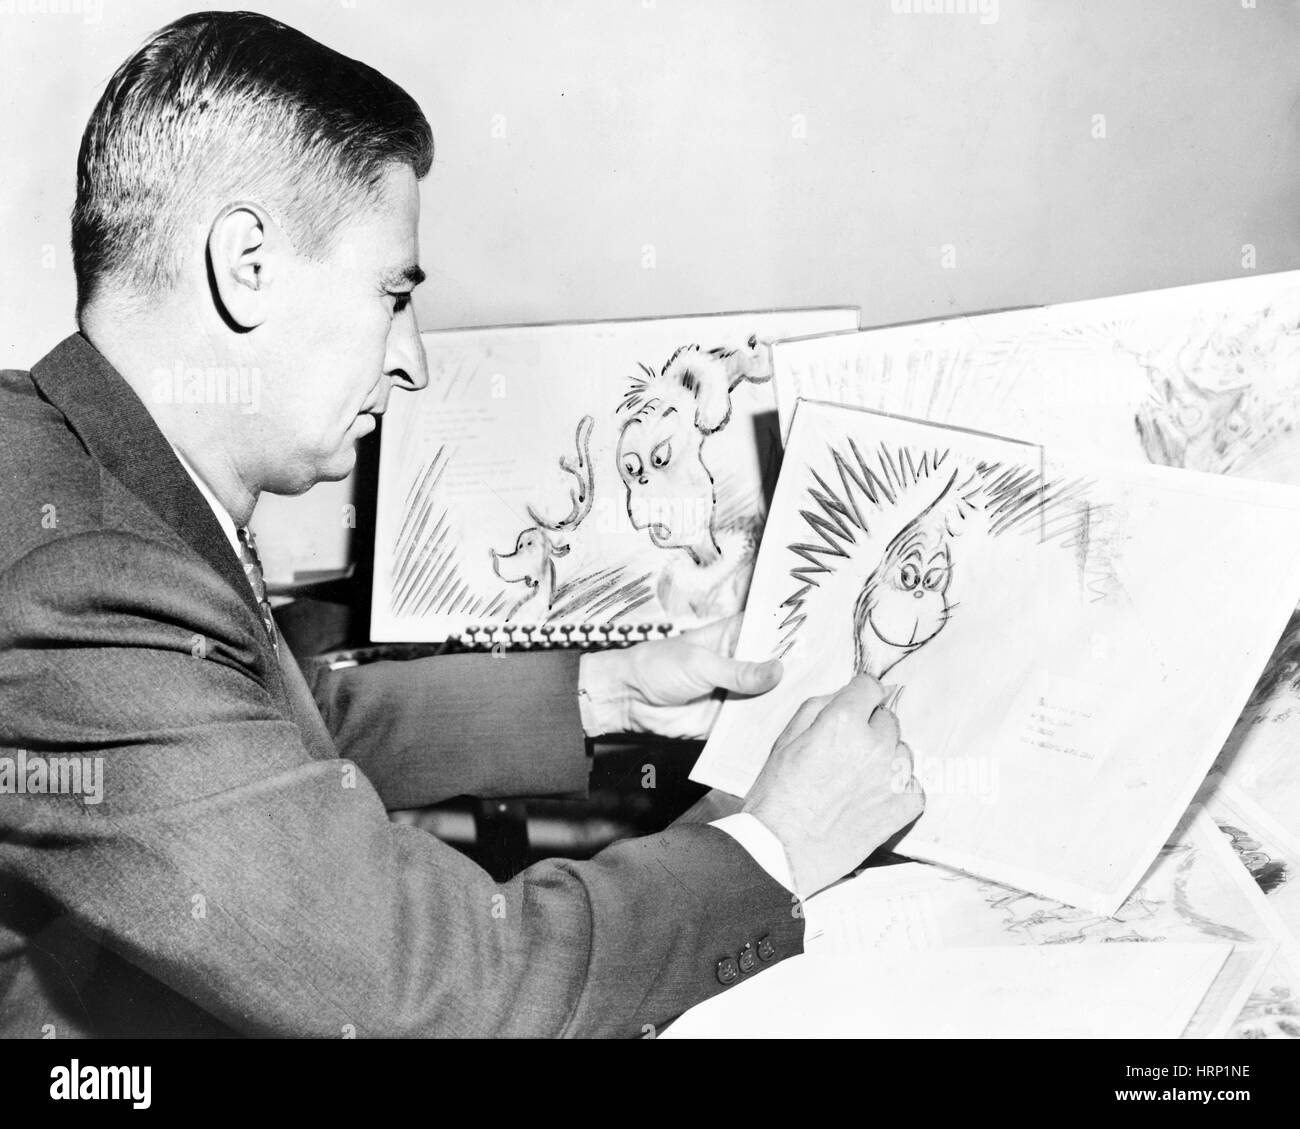 Dr. Seuss Drawing the Grinch, 1957 Stock Photo